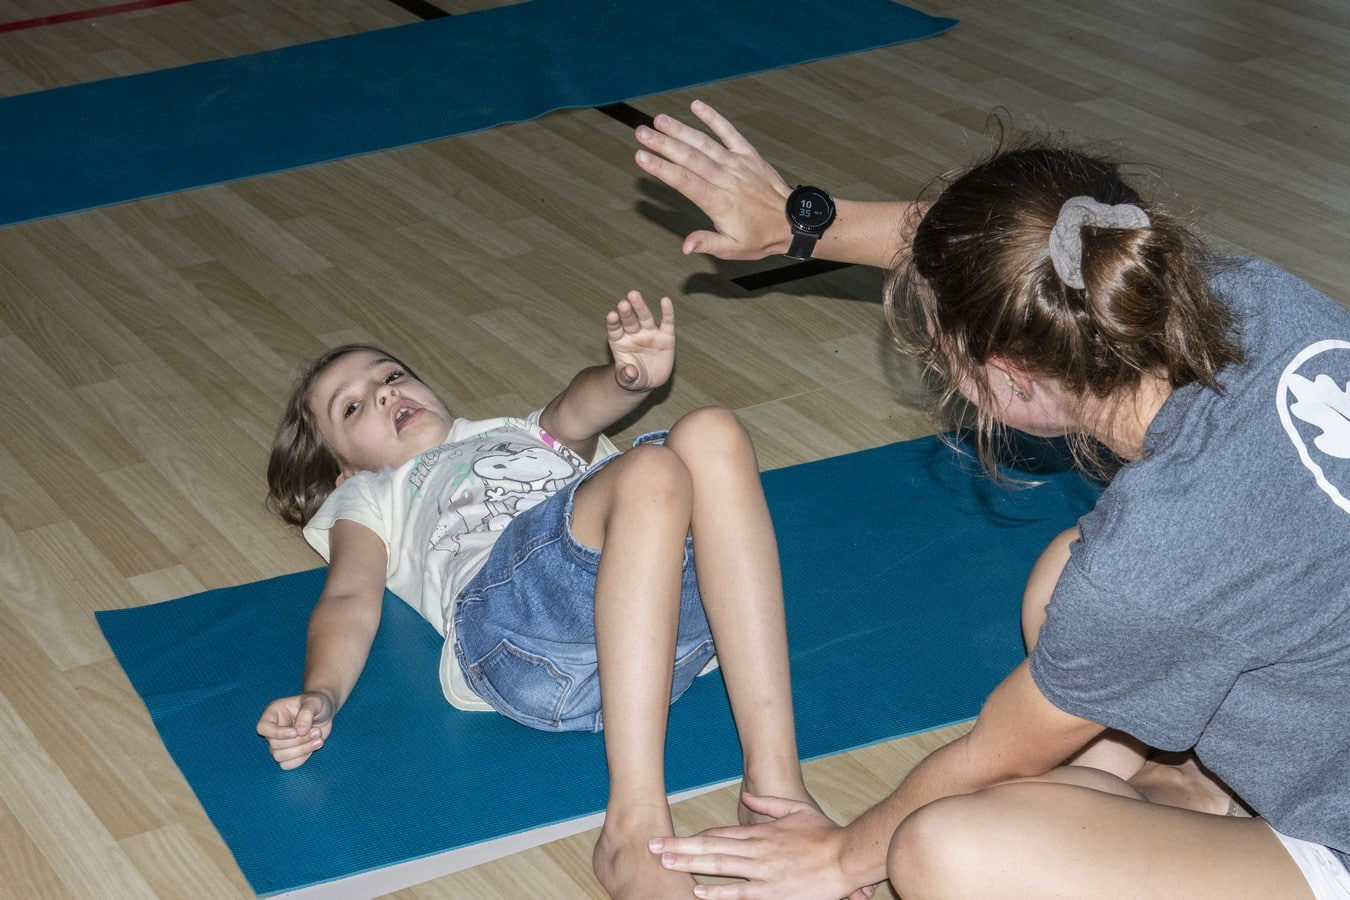 A Young Athlete lies on a mat and tries to do a sit-up while a volunteer holds their feet down